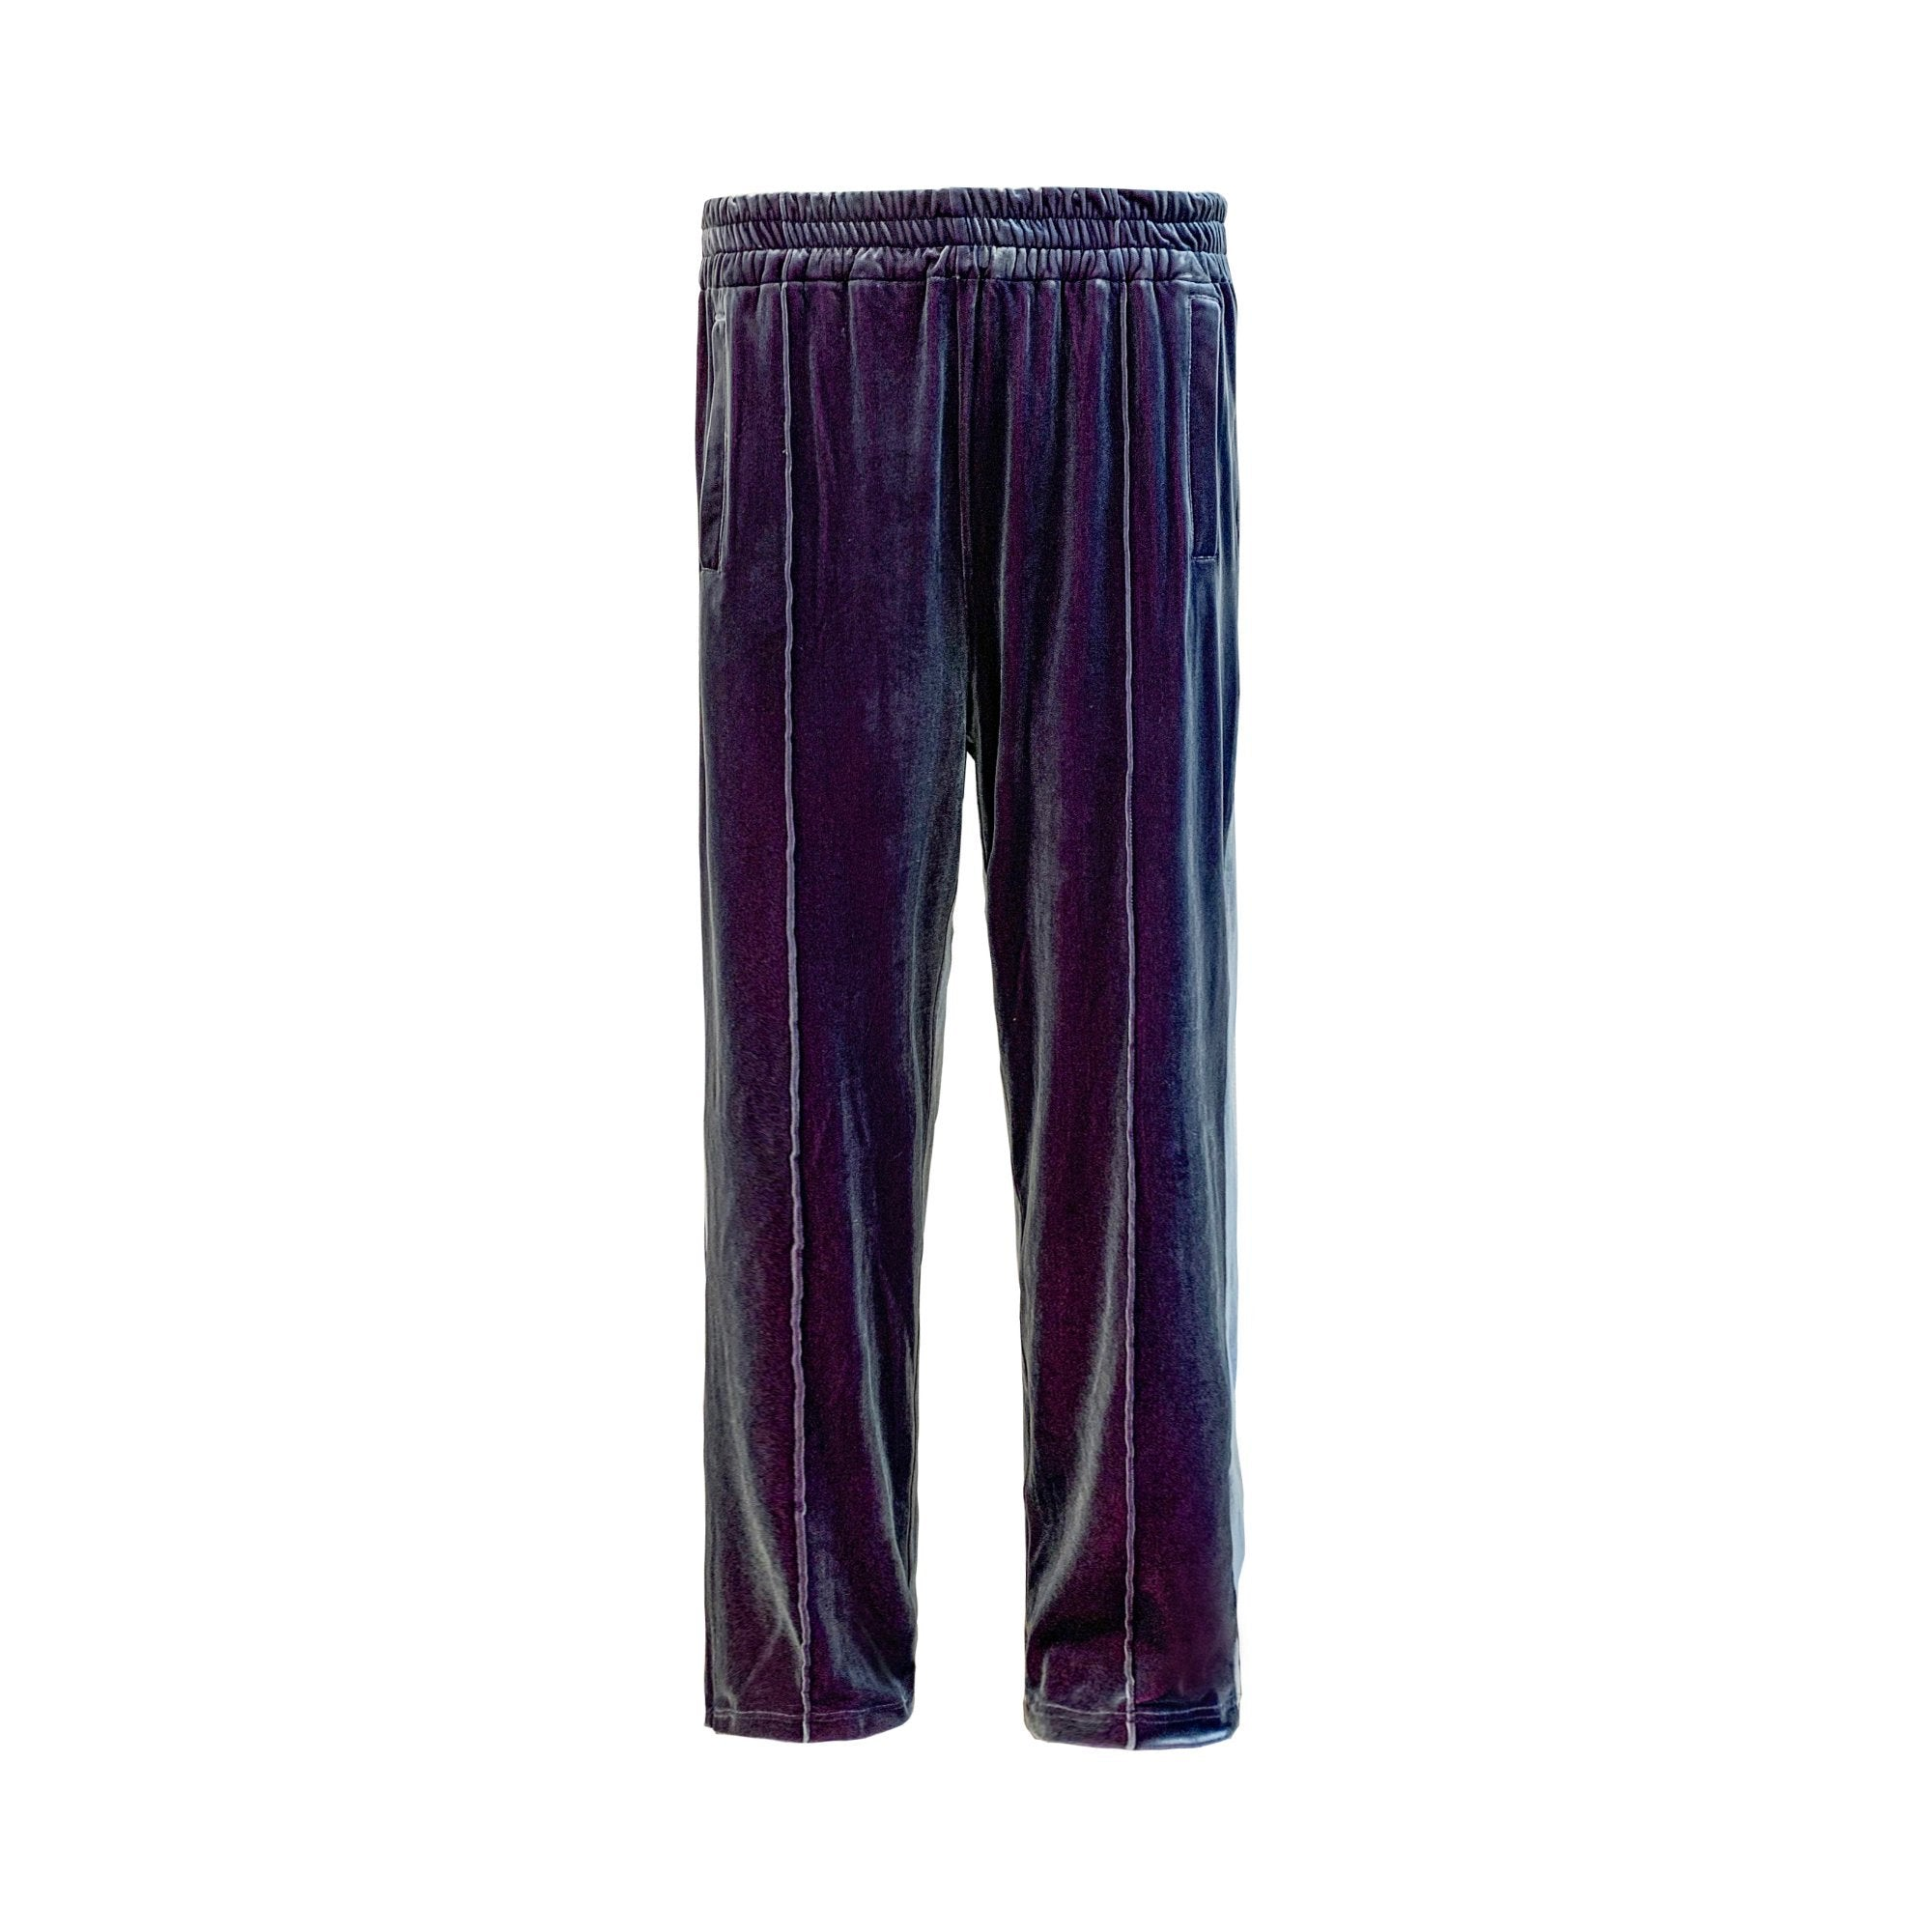 GALLIANO LANDOR Purple-Blue Velvet Pants | MADA IN CHINA